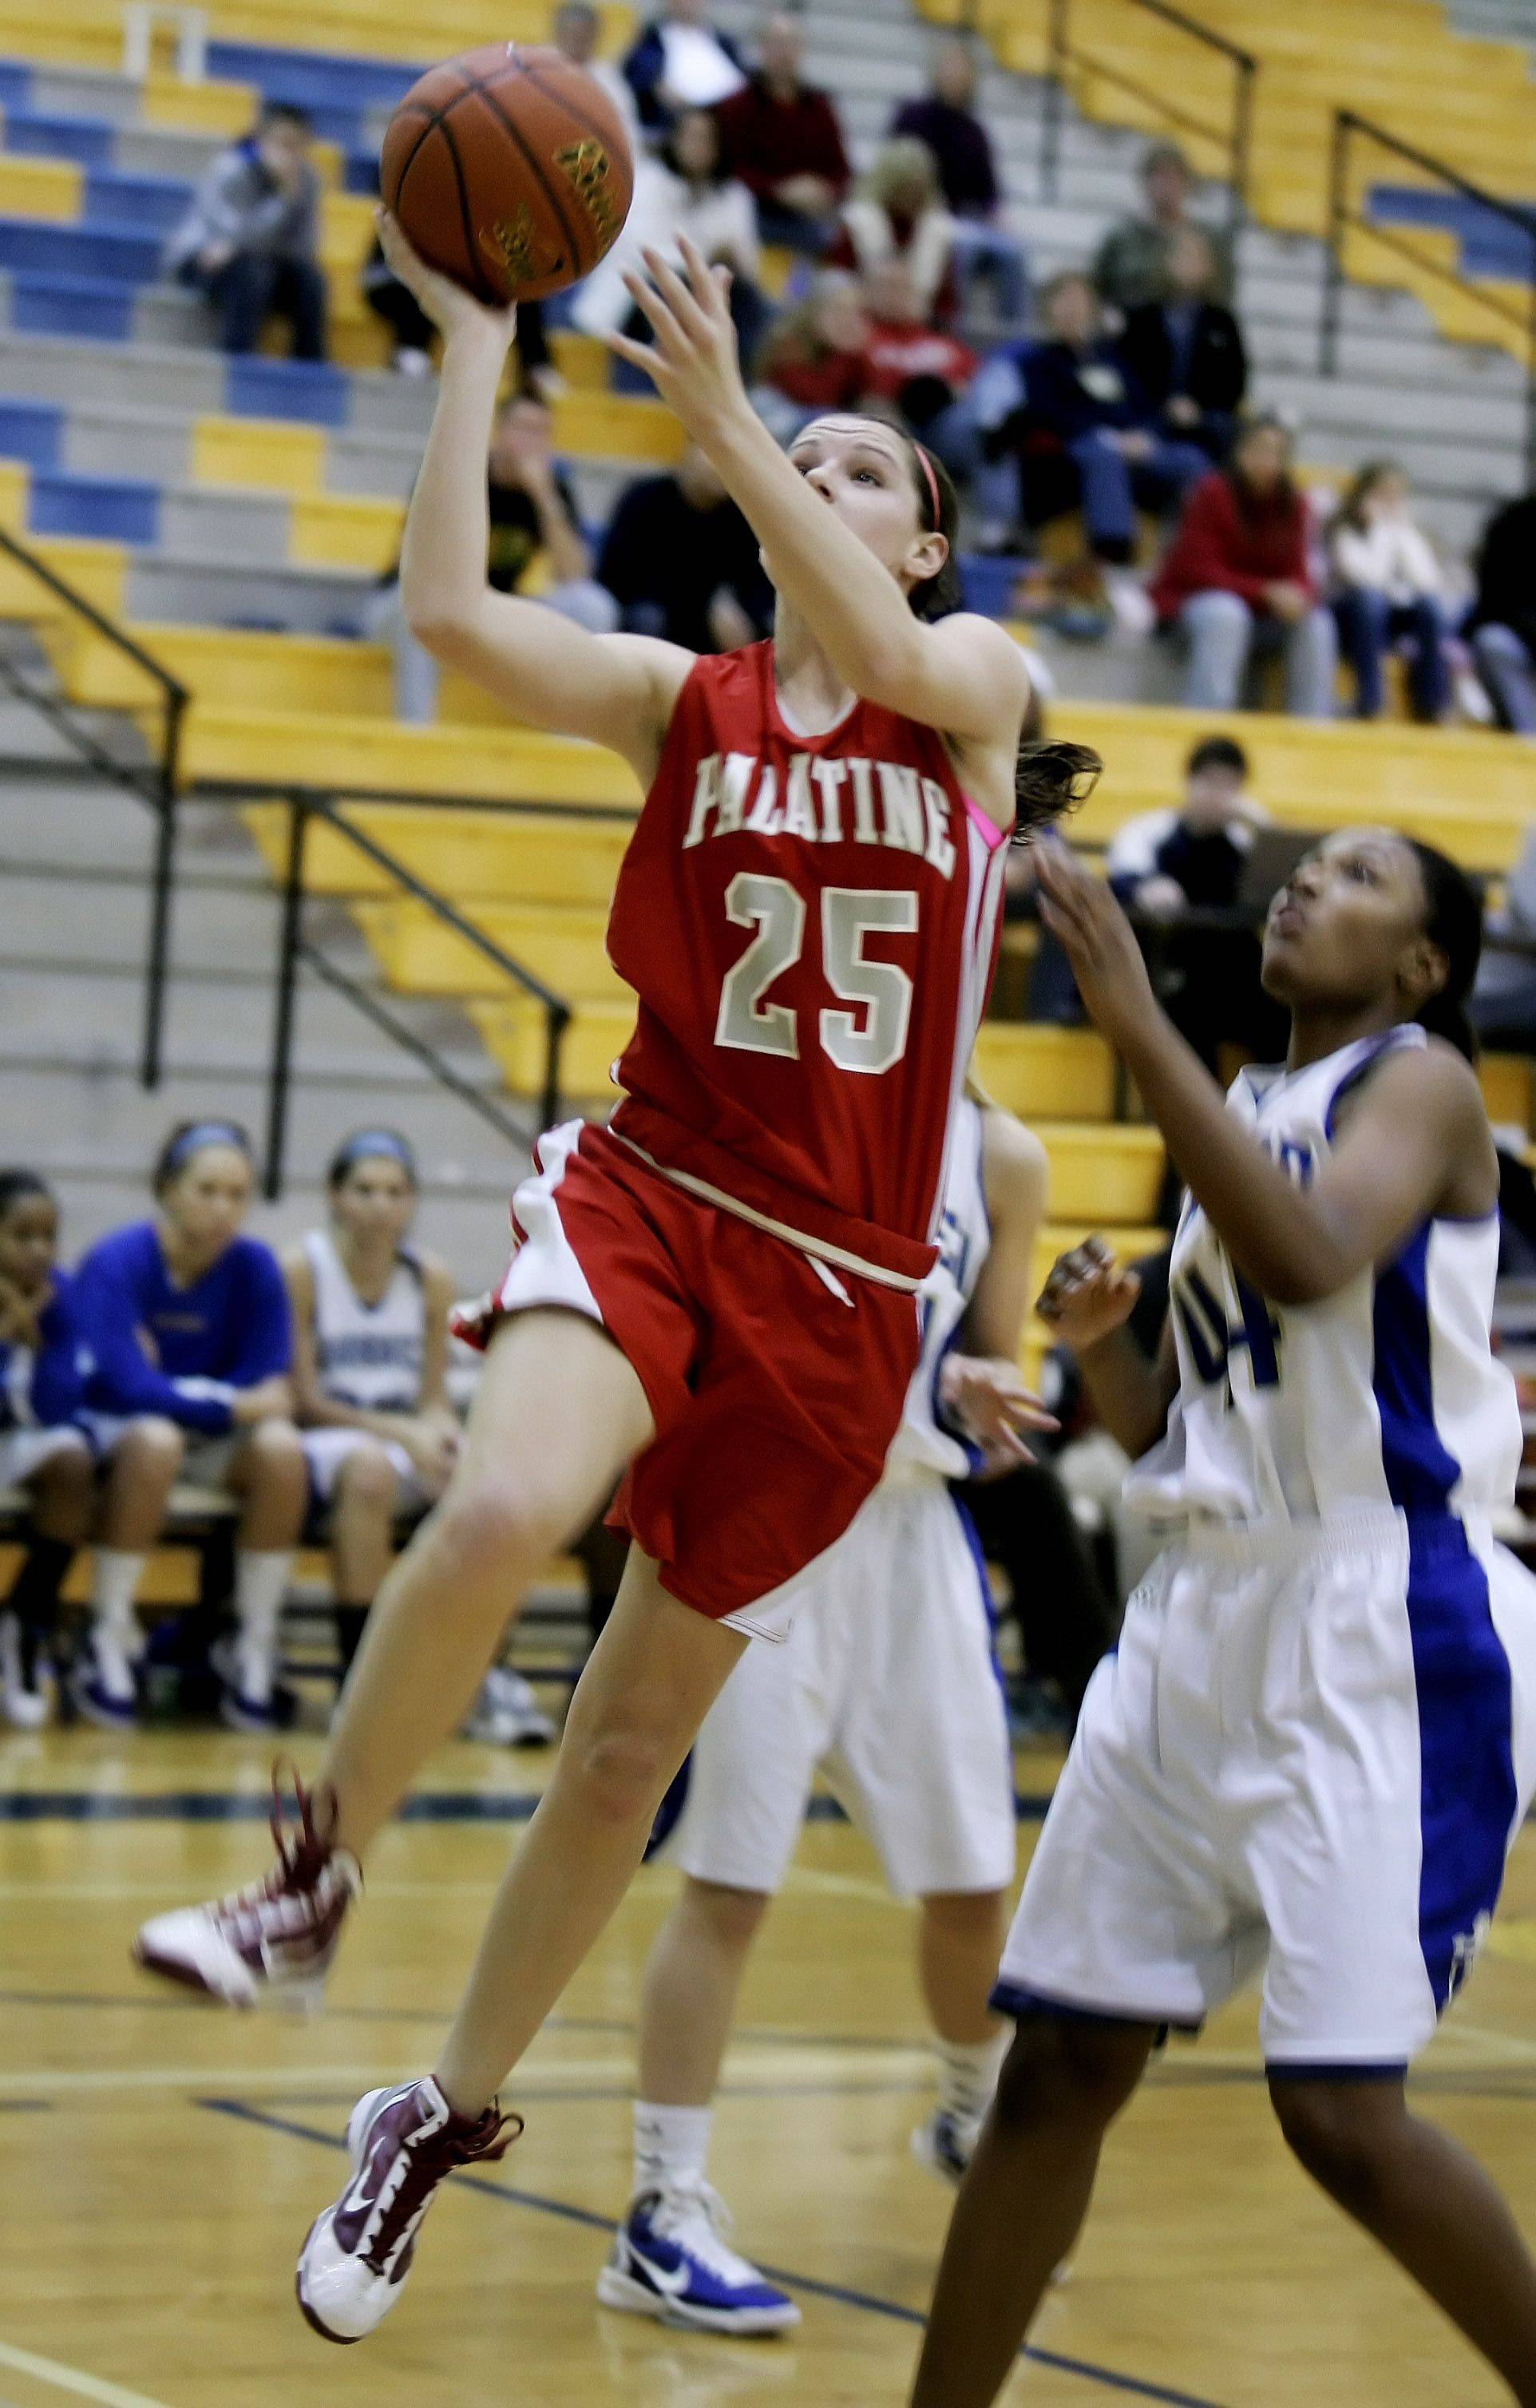 Palatine forward Katelyn Mayer goes up for a layup during the girls basketball game between Palatine and Warren Tuesday in the 2010 Blue Devil Classic at Warren Township High School in Gurnee.